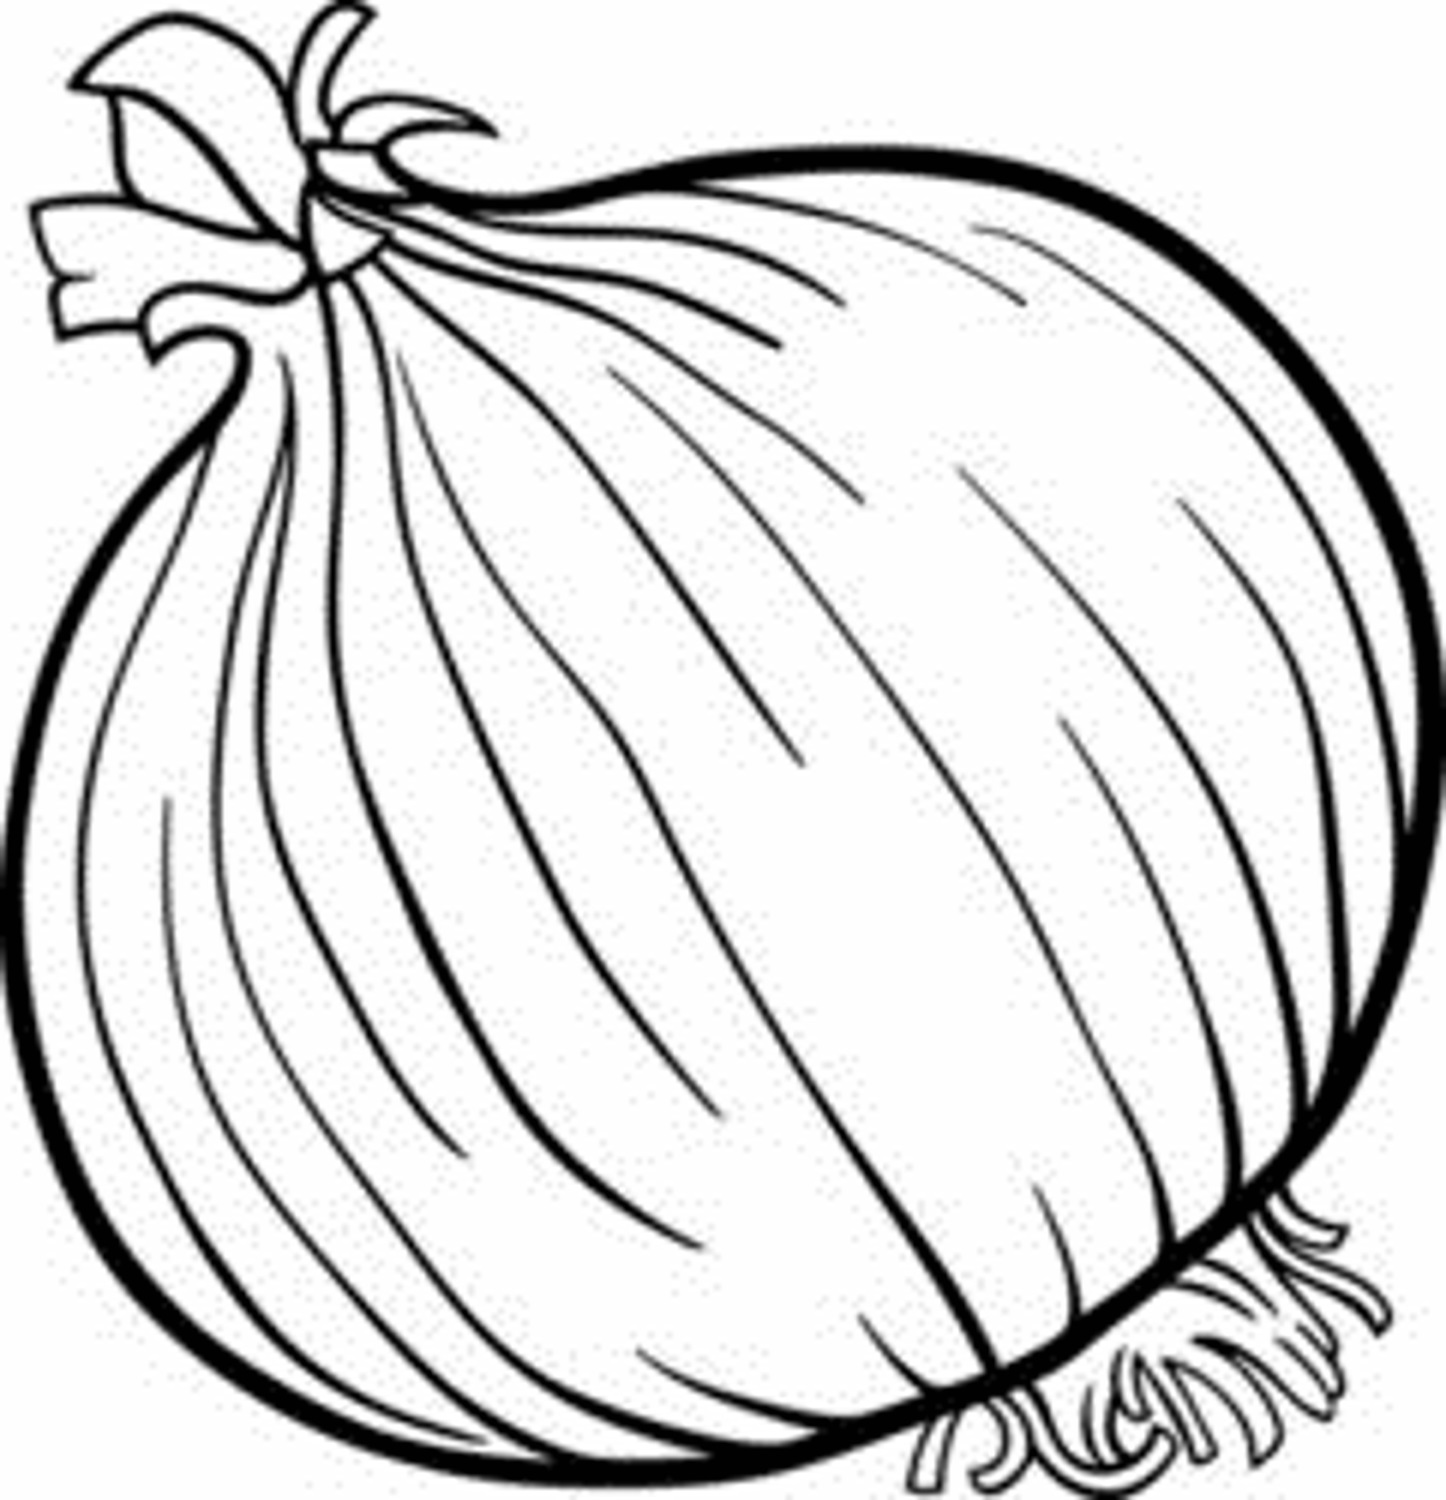 Onion clipart coloring page With Vegetable Quilted with